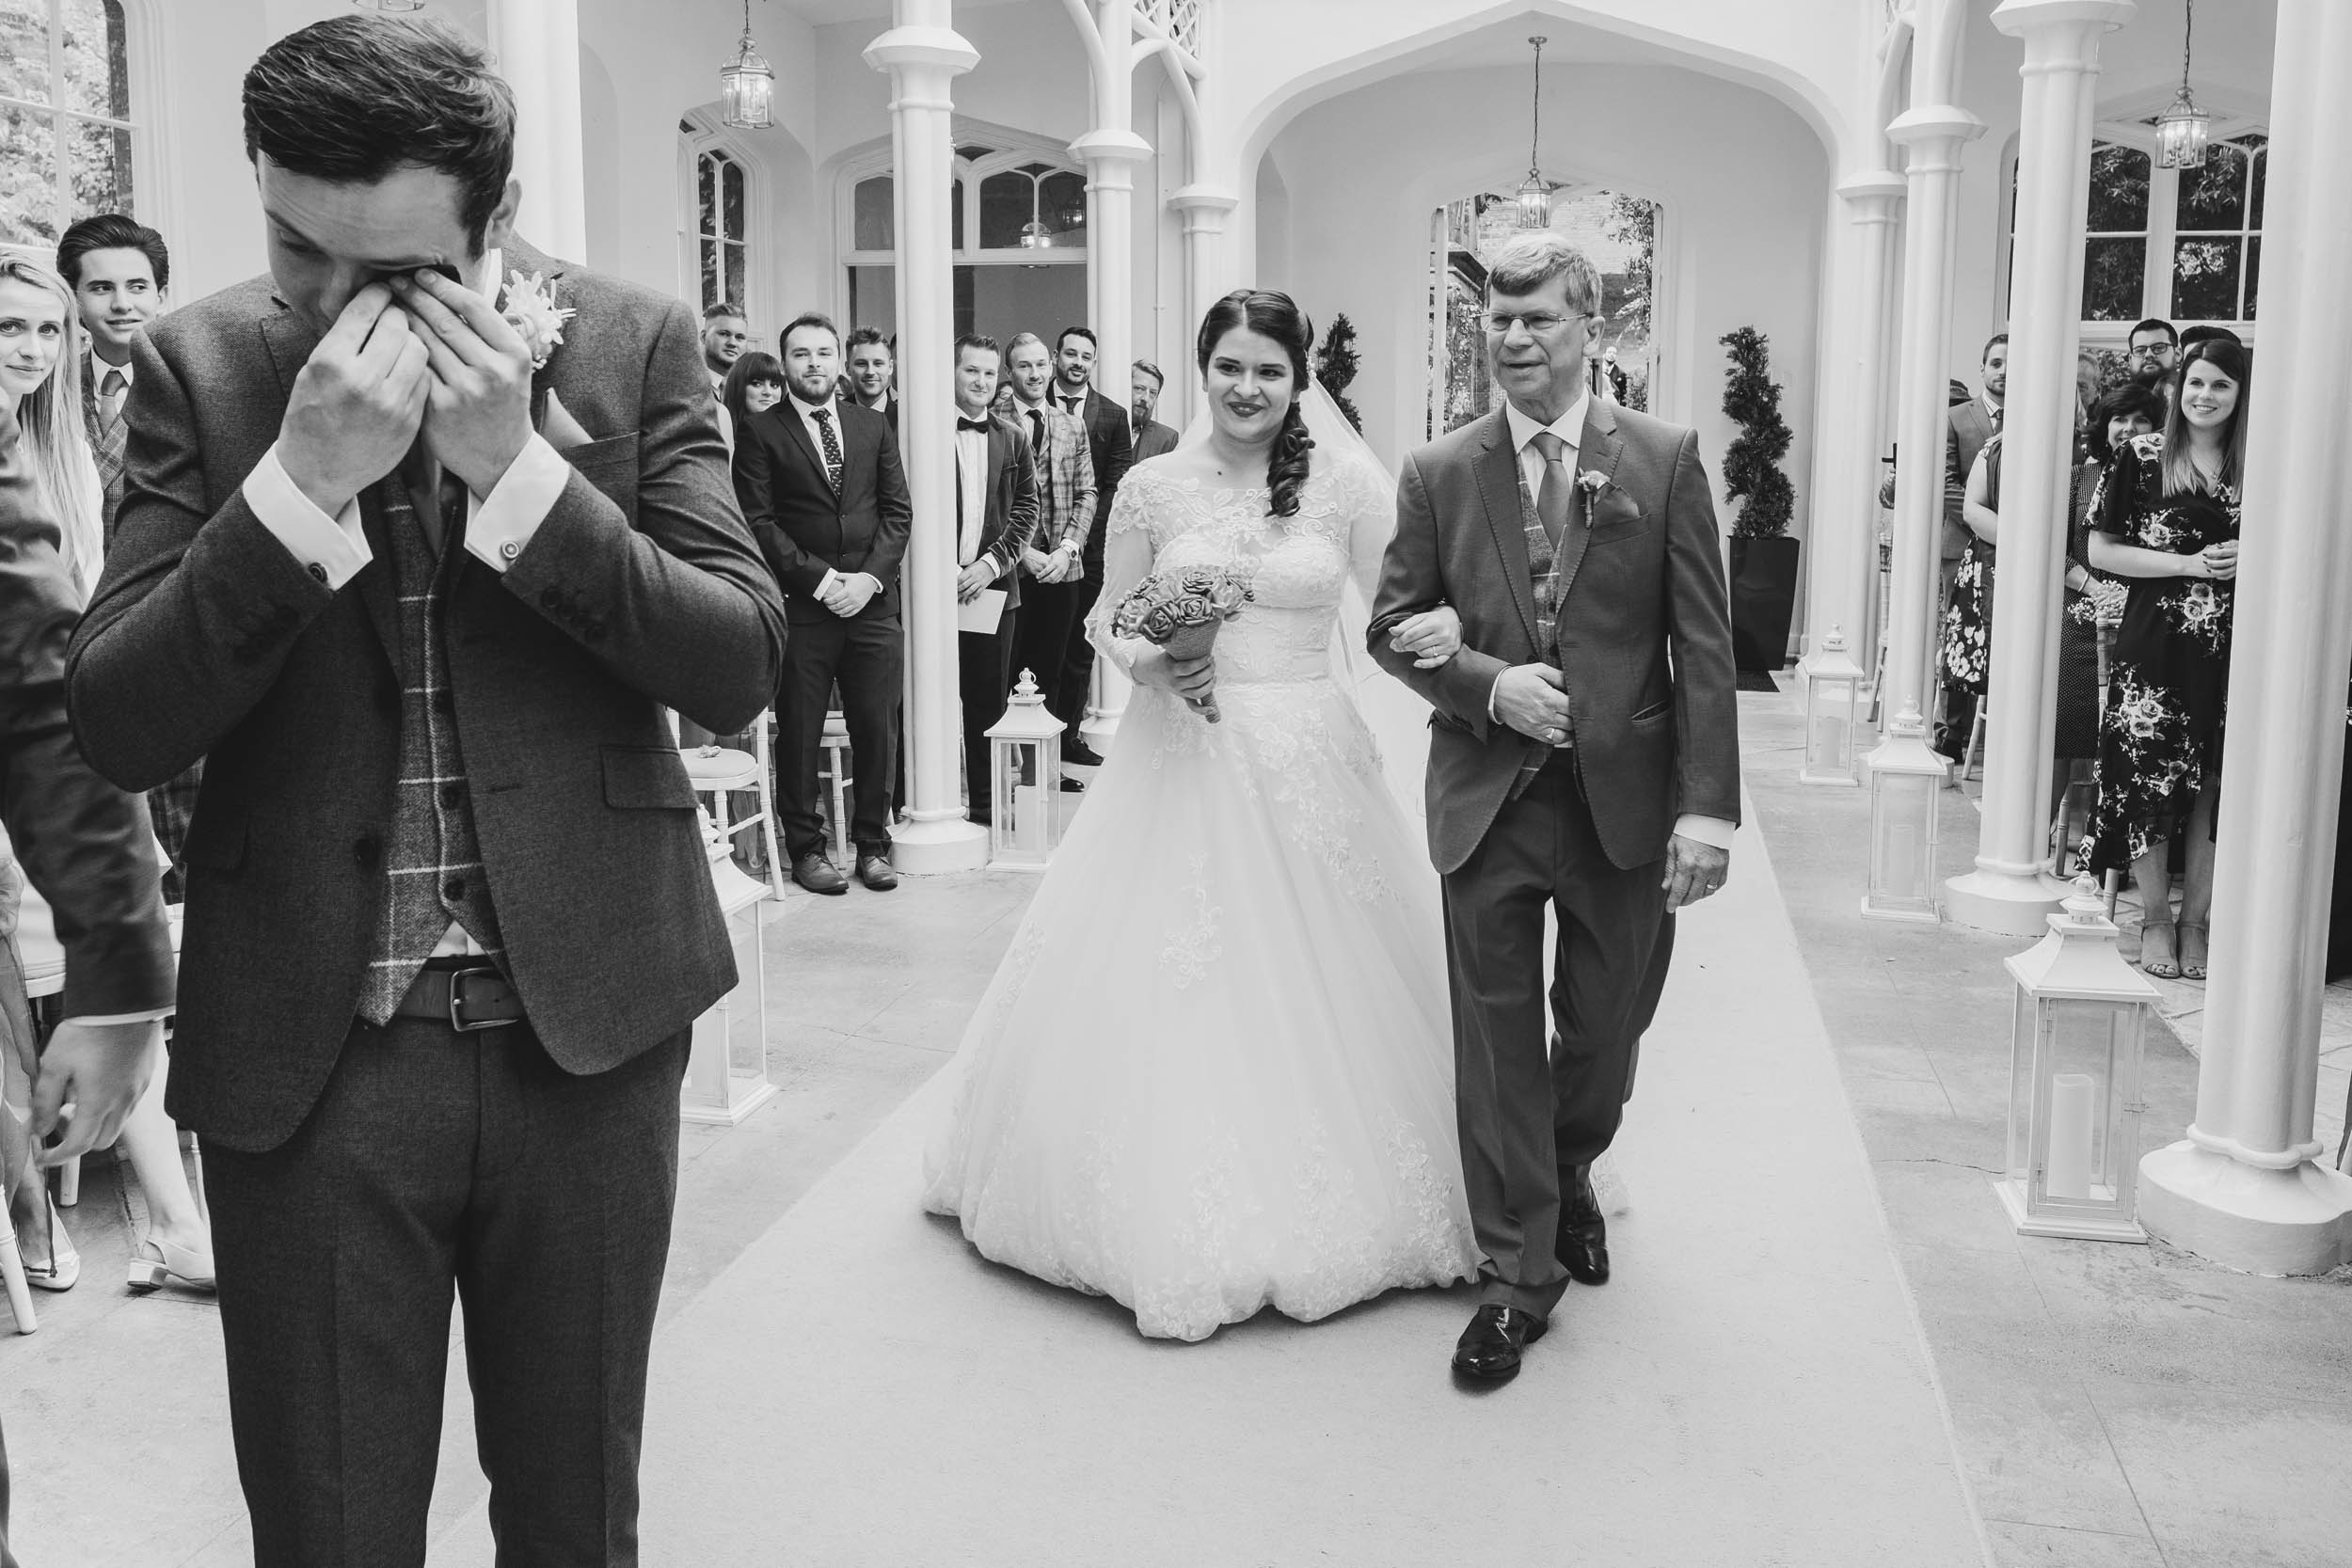 a groom cries at the sight of his bride walking down the aisle about to be given away by her father